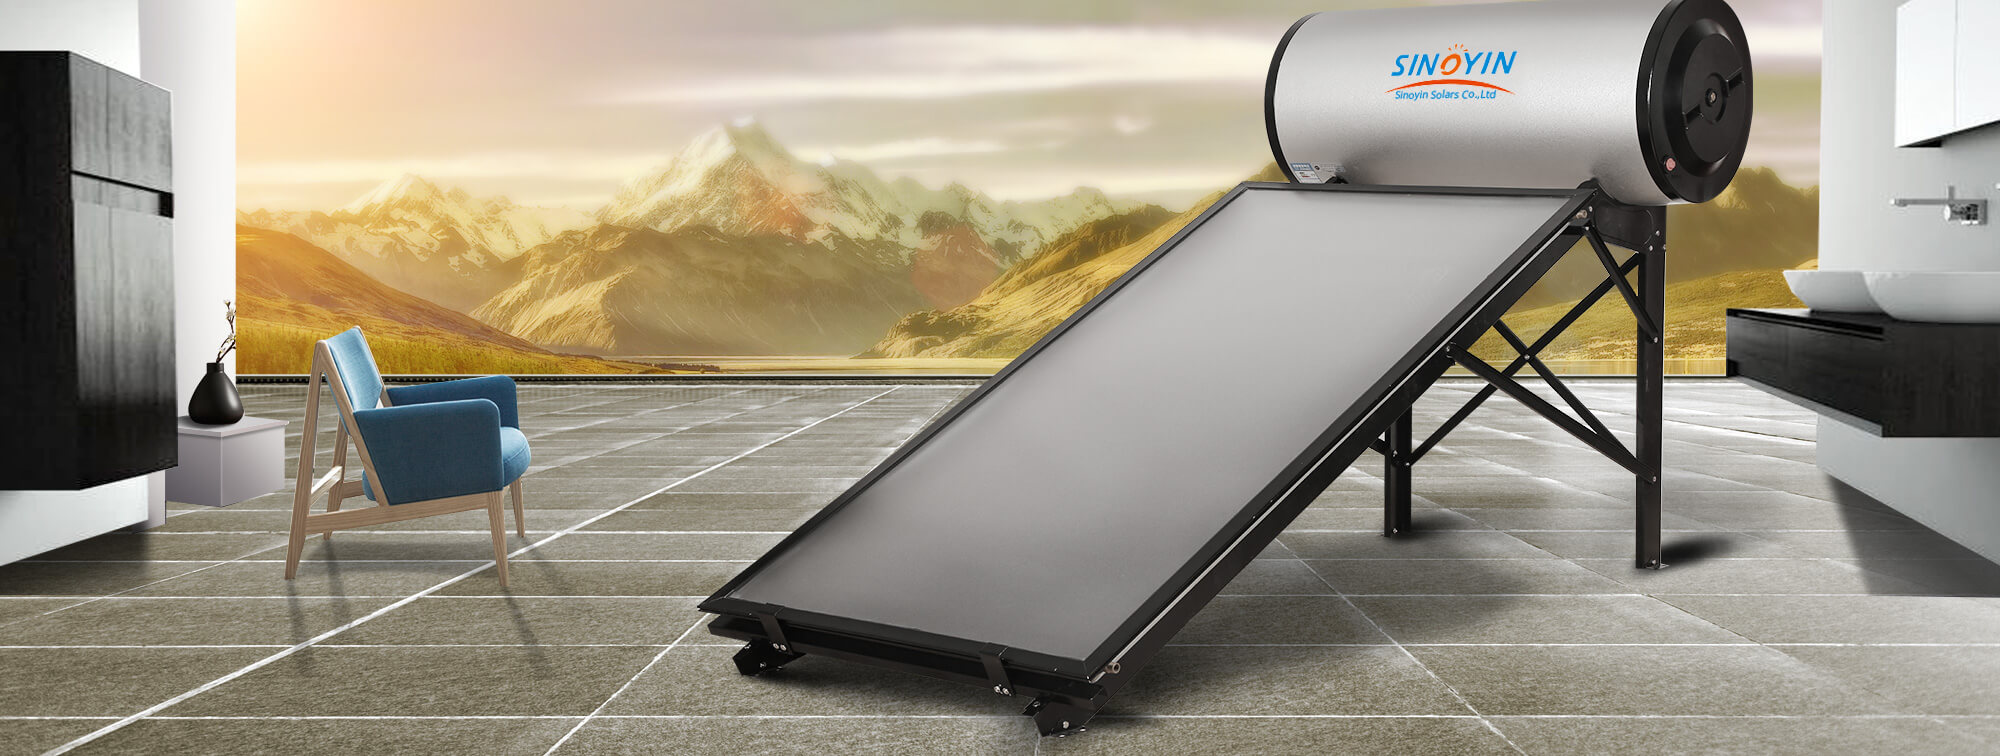 High-End Flat Solar Collector Advocates